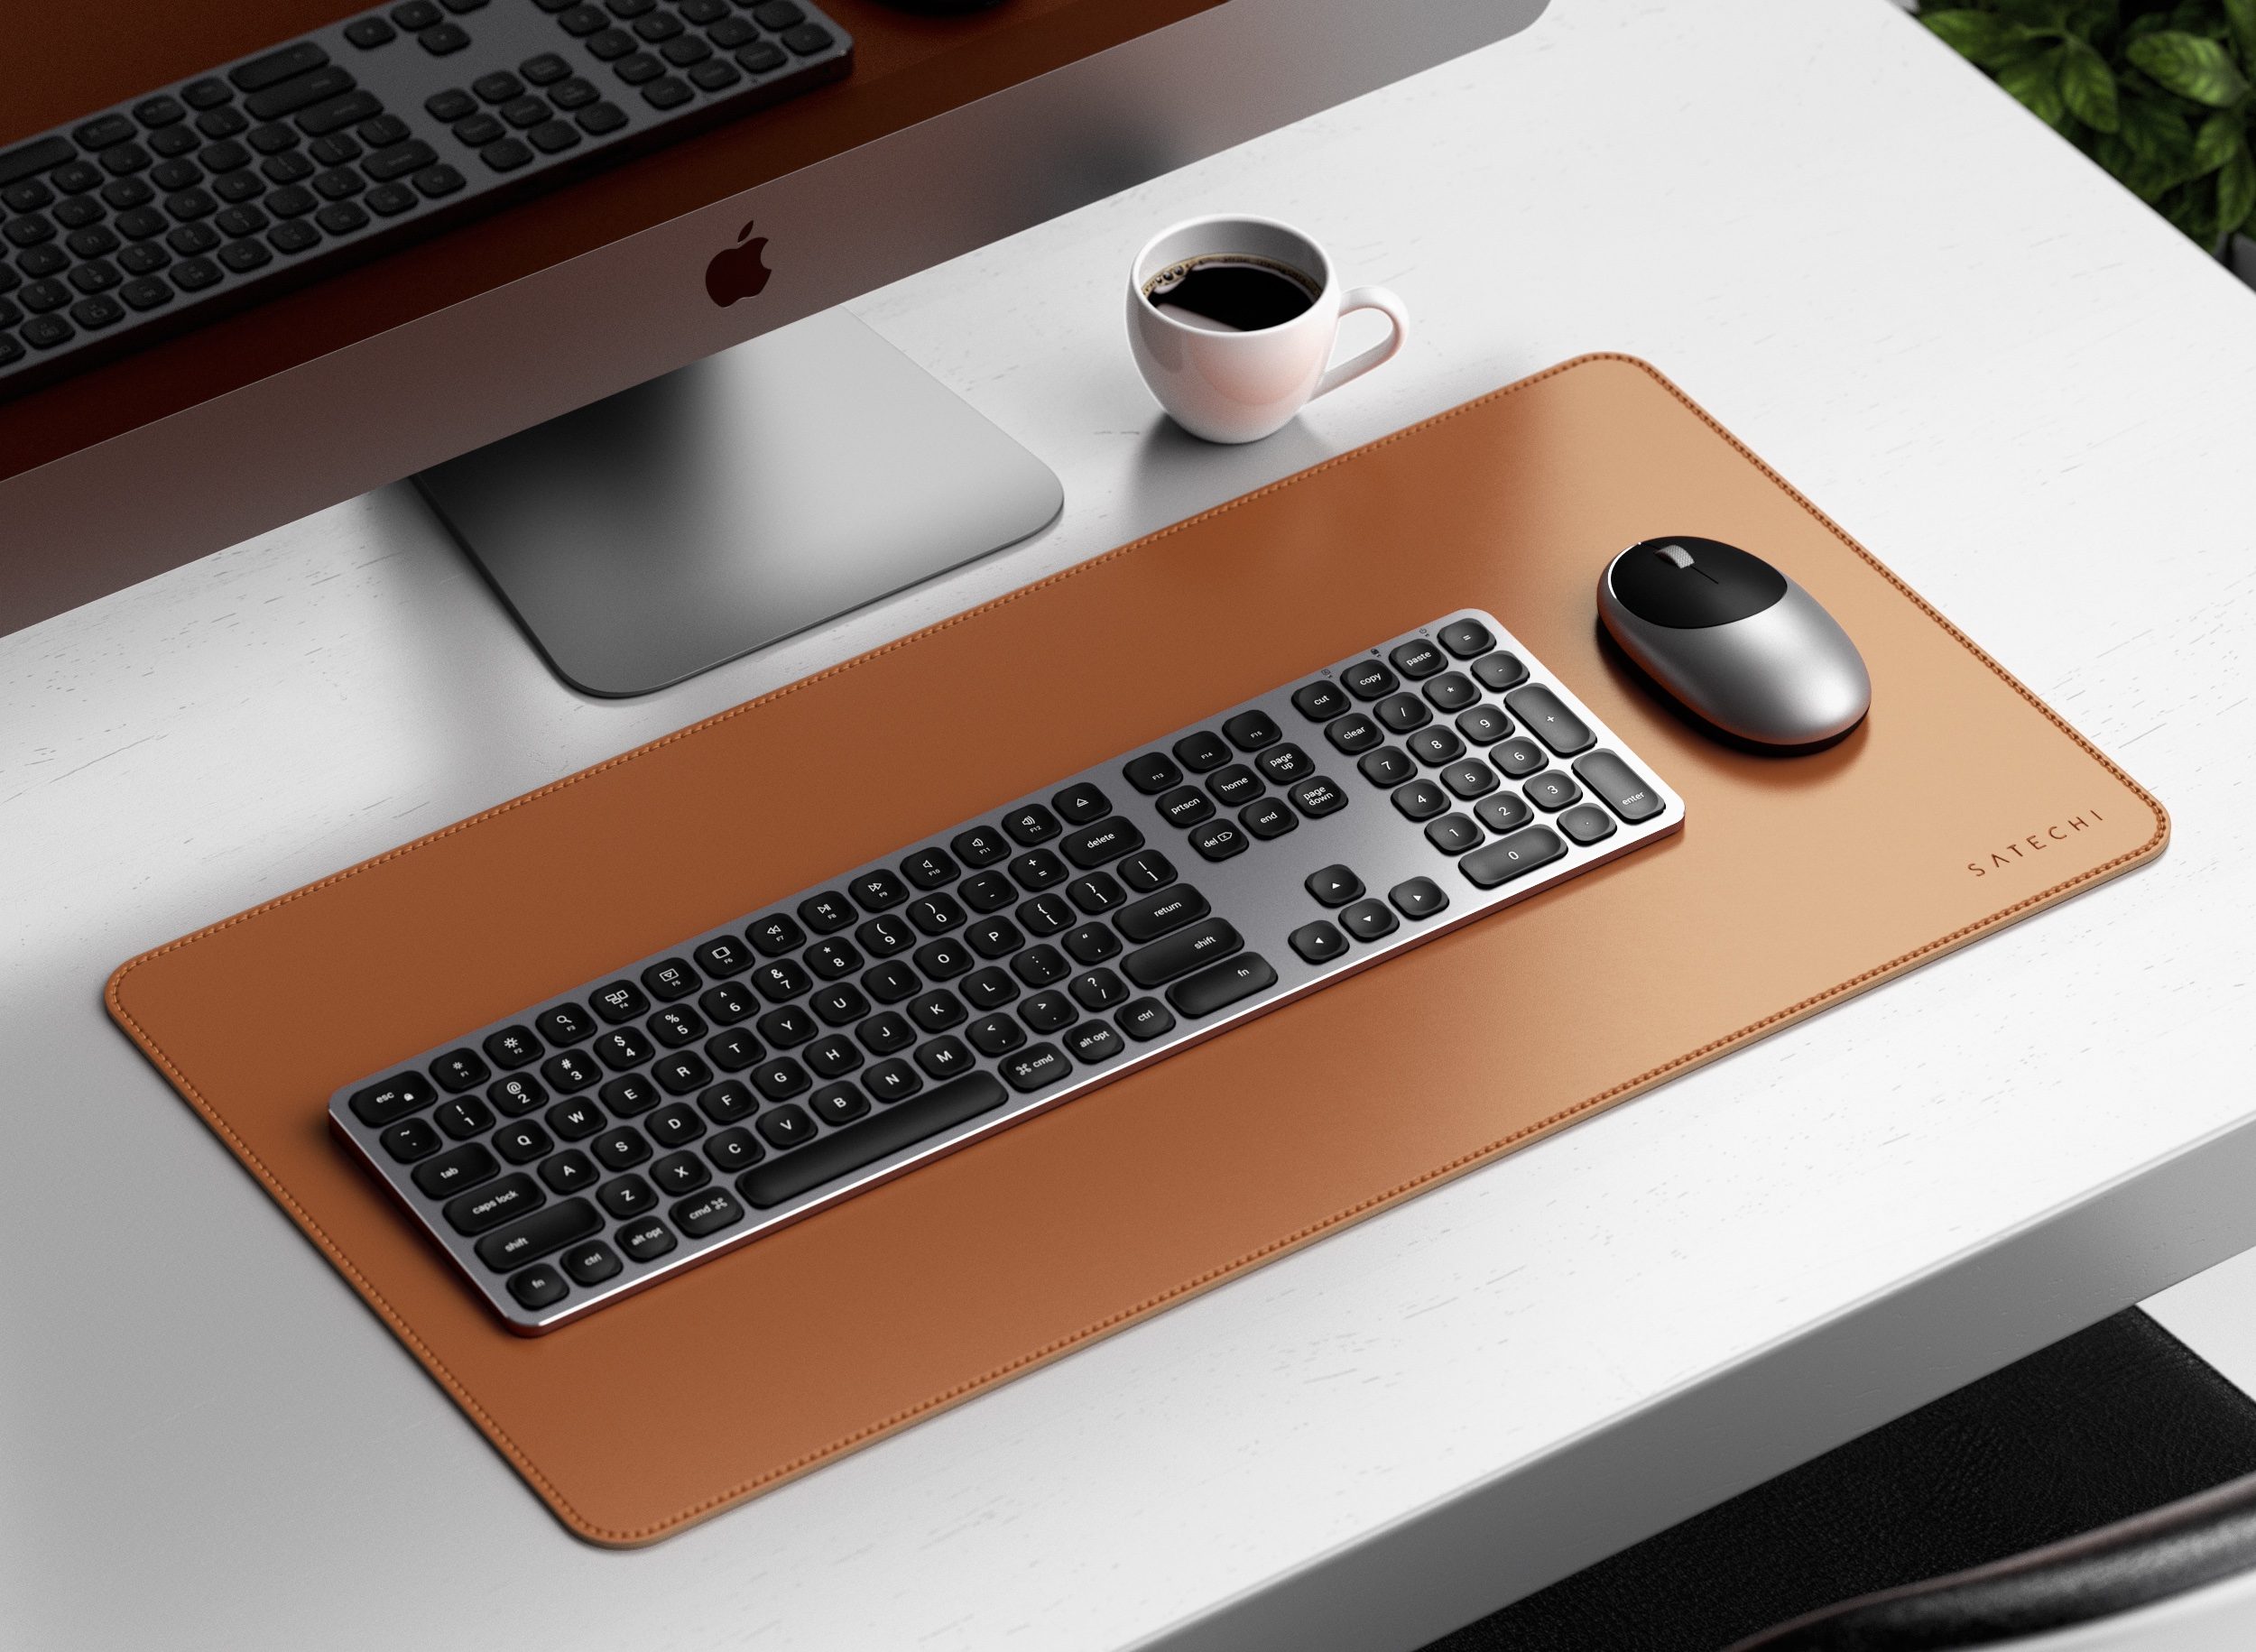 4208be02977 Satechi unveils a wireless mouse with USB-C charging along with a ...